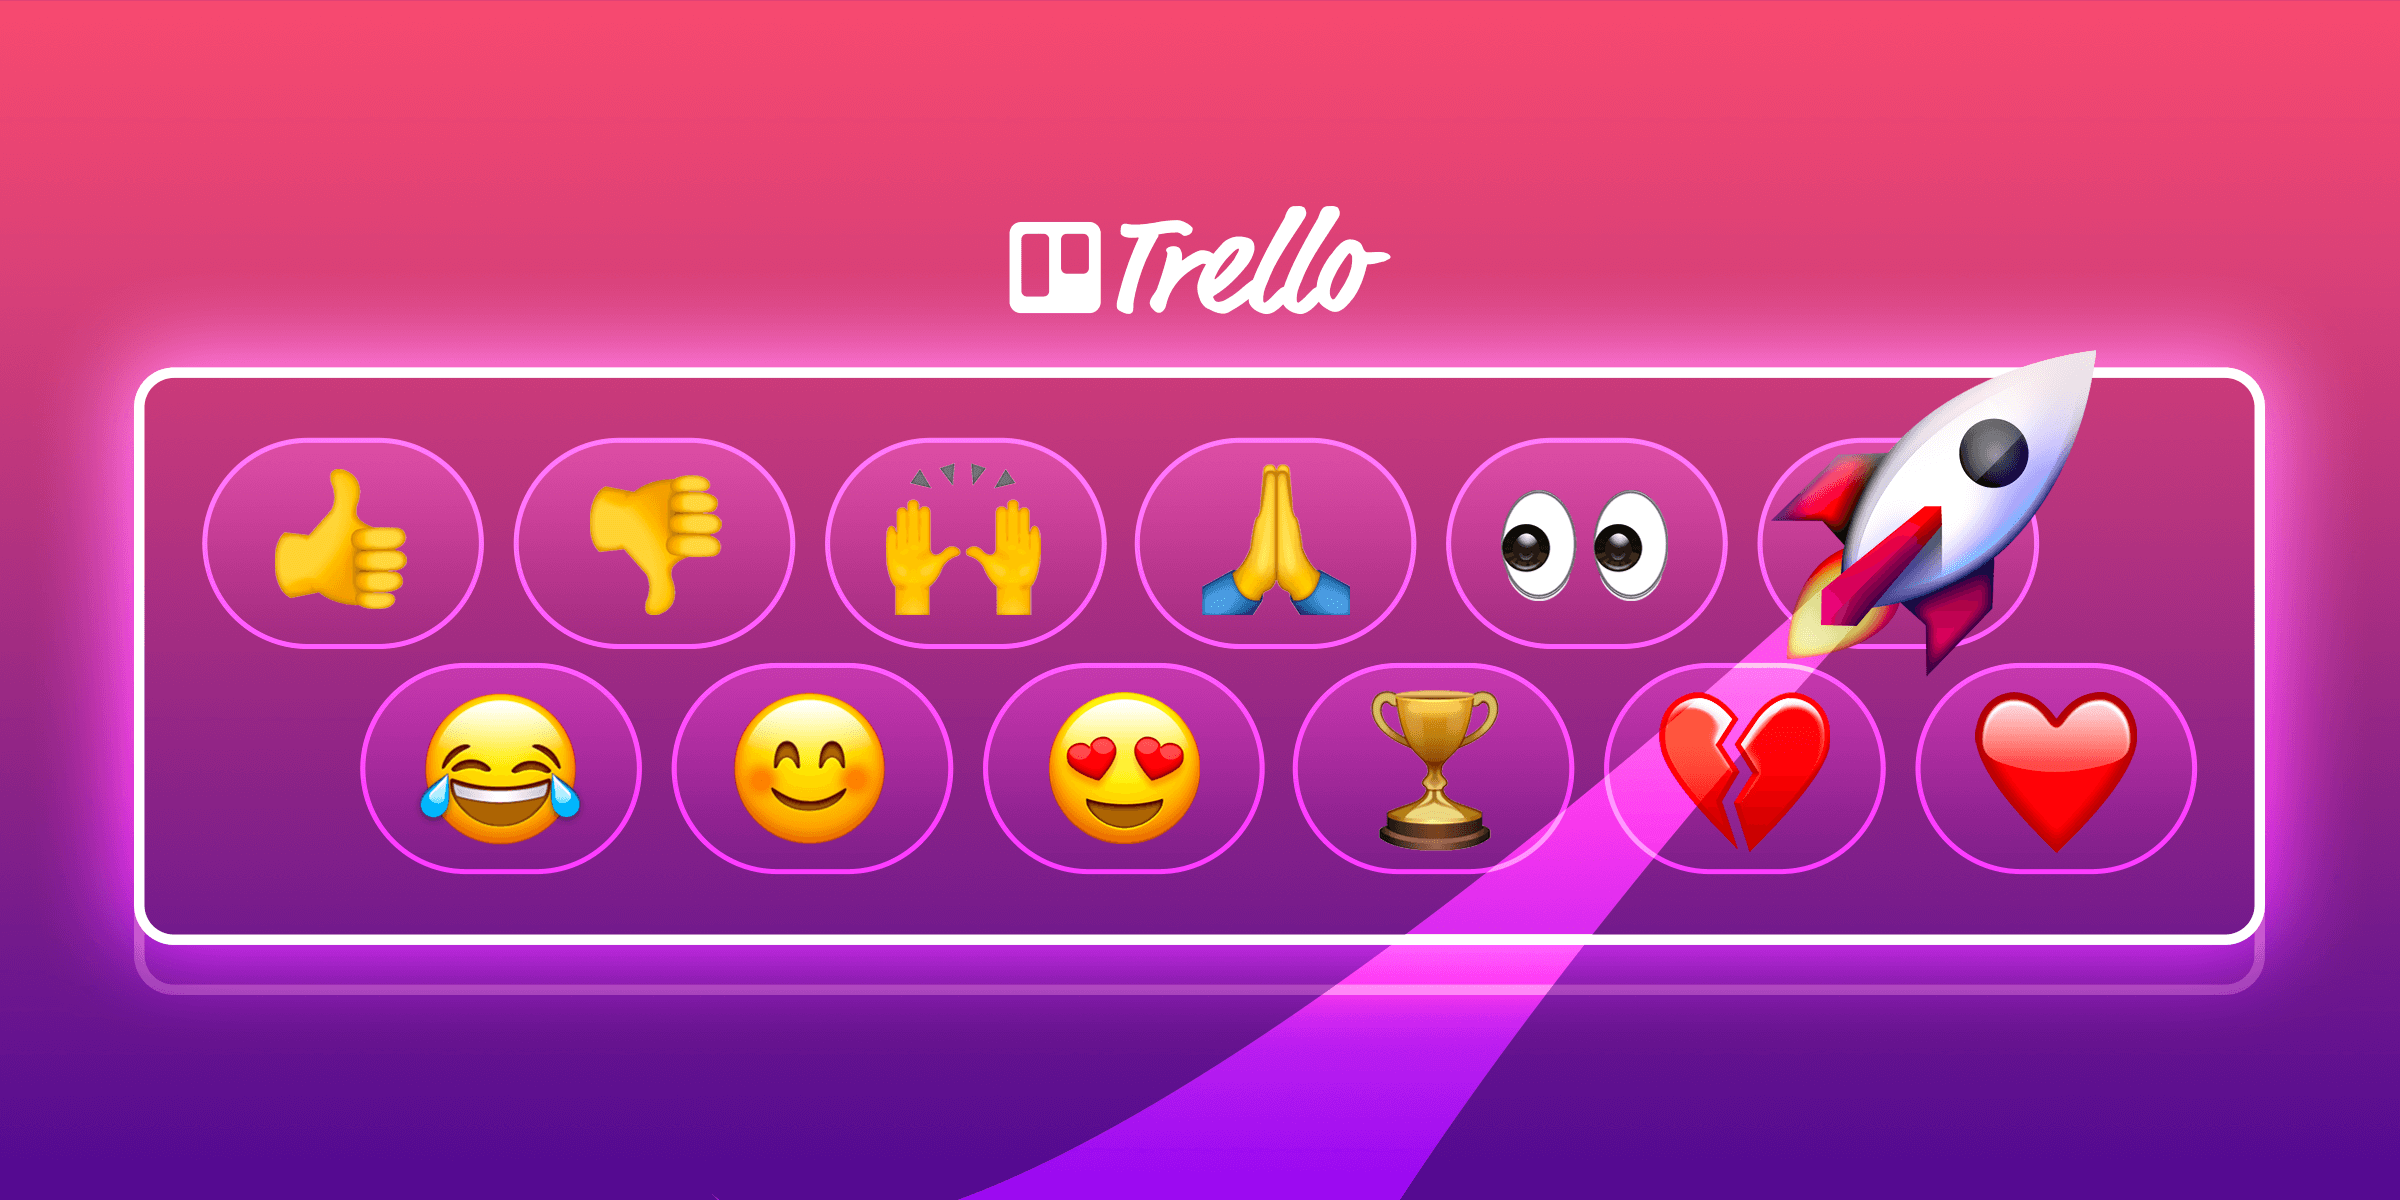 Roses Are Red, Violets Are Blue, Introducing Emoji Reactions Because We ❤️  You